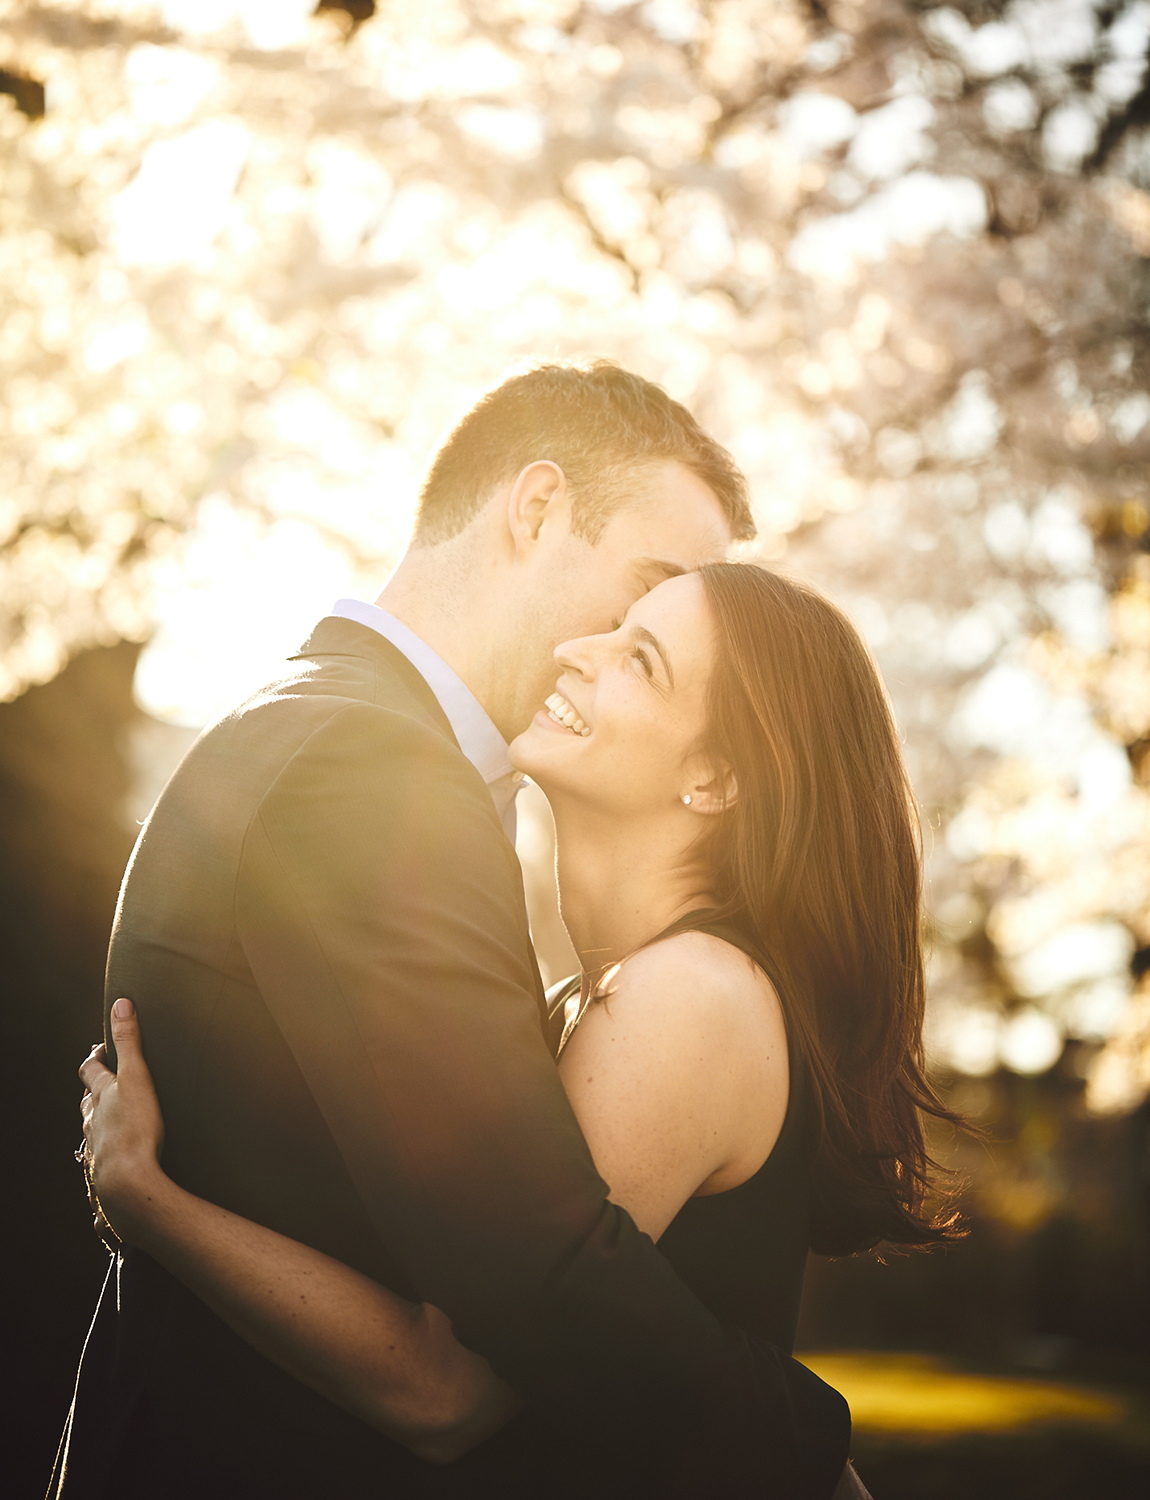 180422_StevensInstitureofTechnologyEngagementPhotography_HobokenEngagement Photography_By_BriJohnsonWeddings_0015.jpg